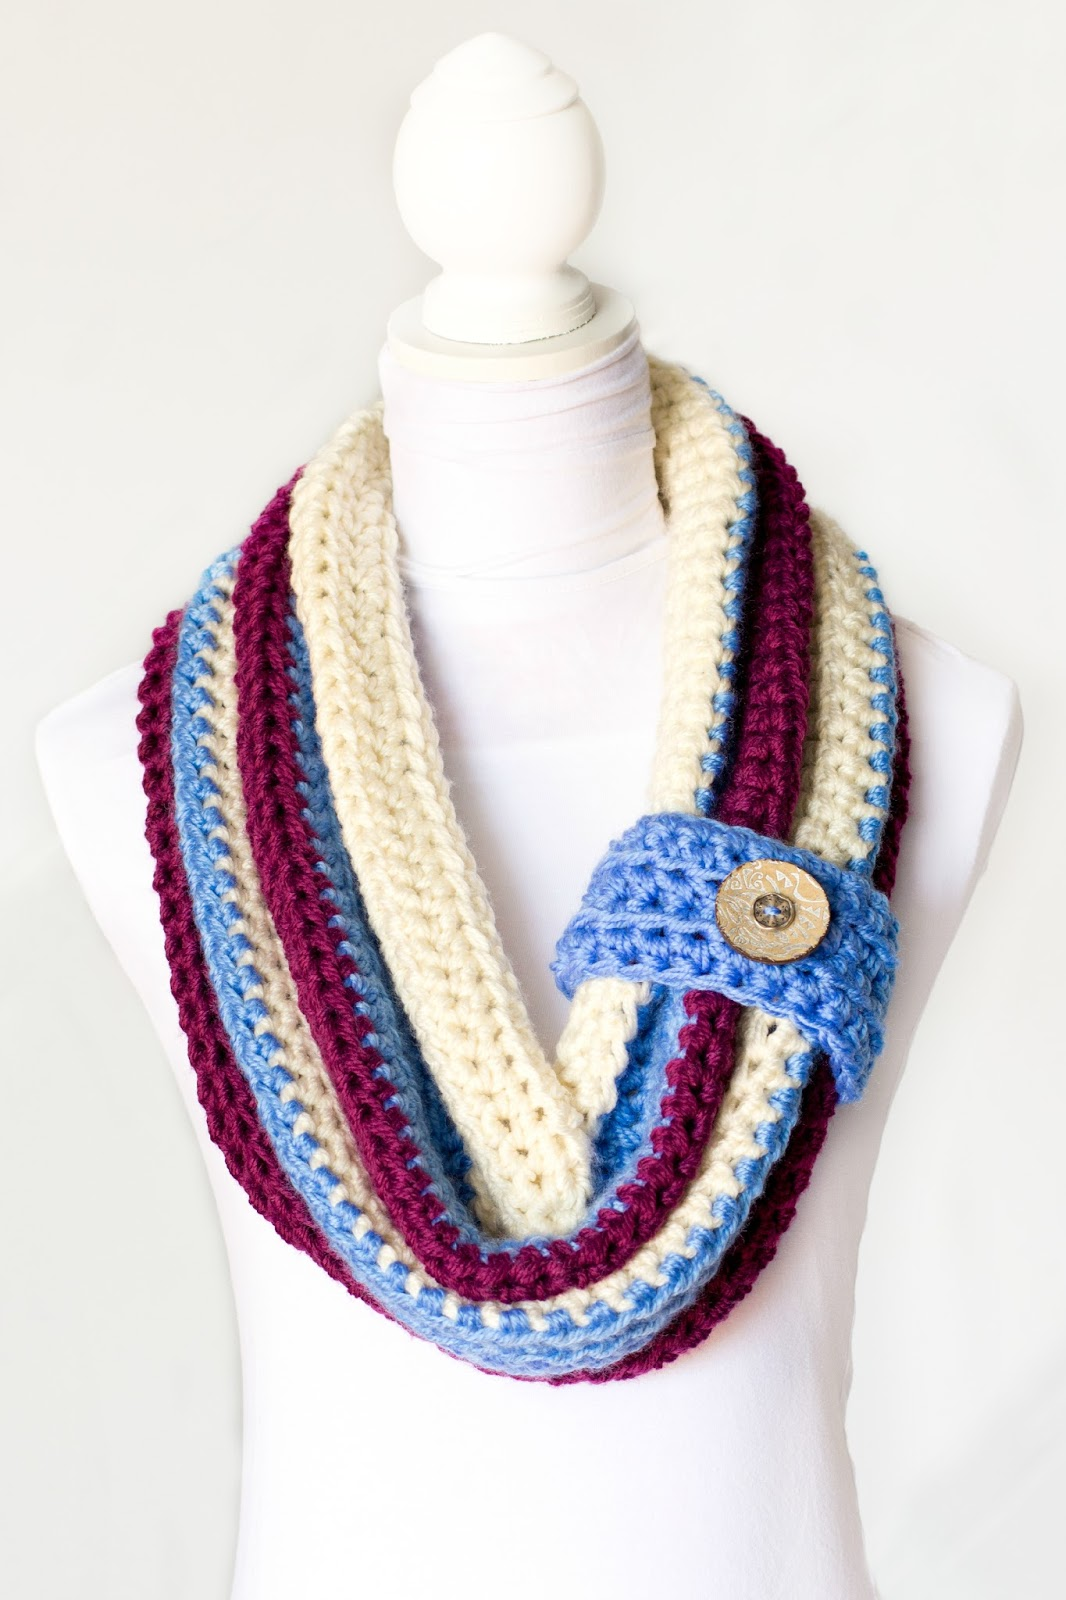 Crochet Scarf Pattern With Button : Hopeful Honey Craft, Crochet, Create: Chunky Button Cowl ...